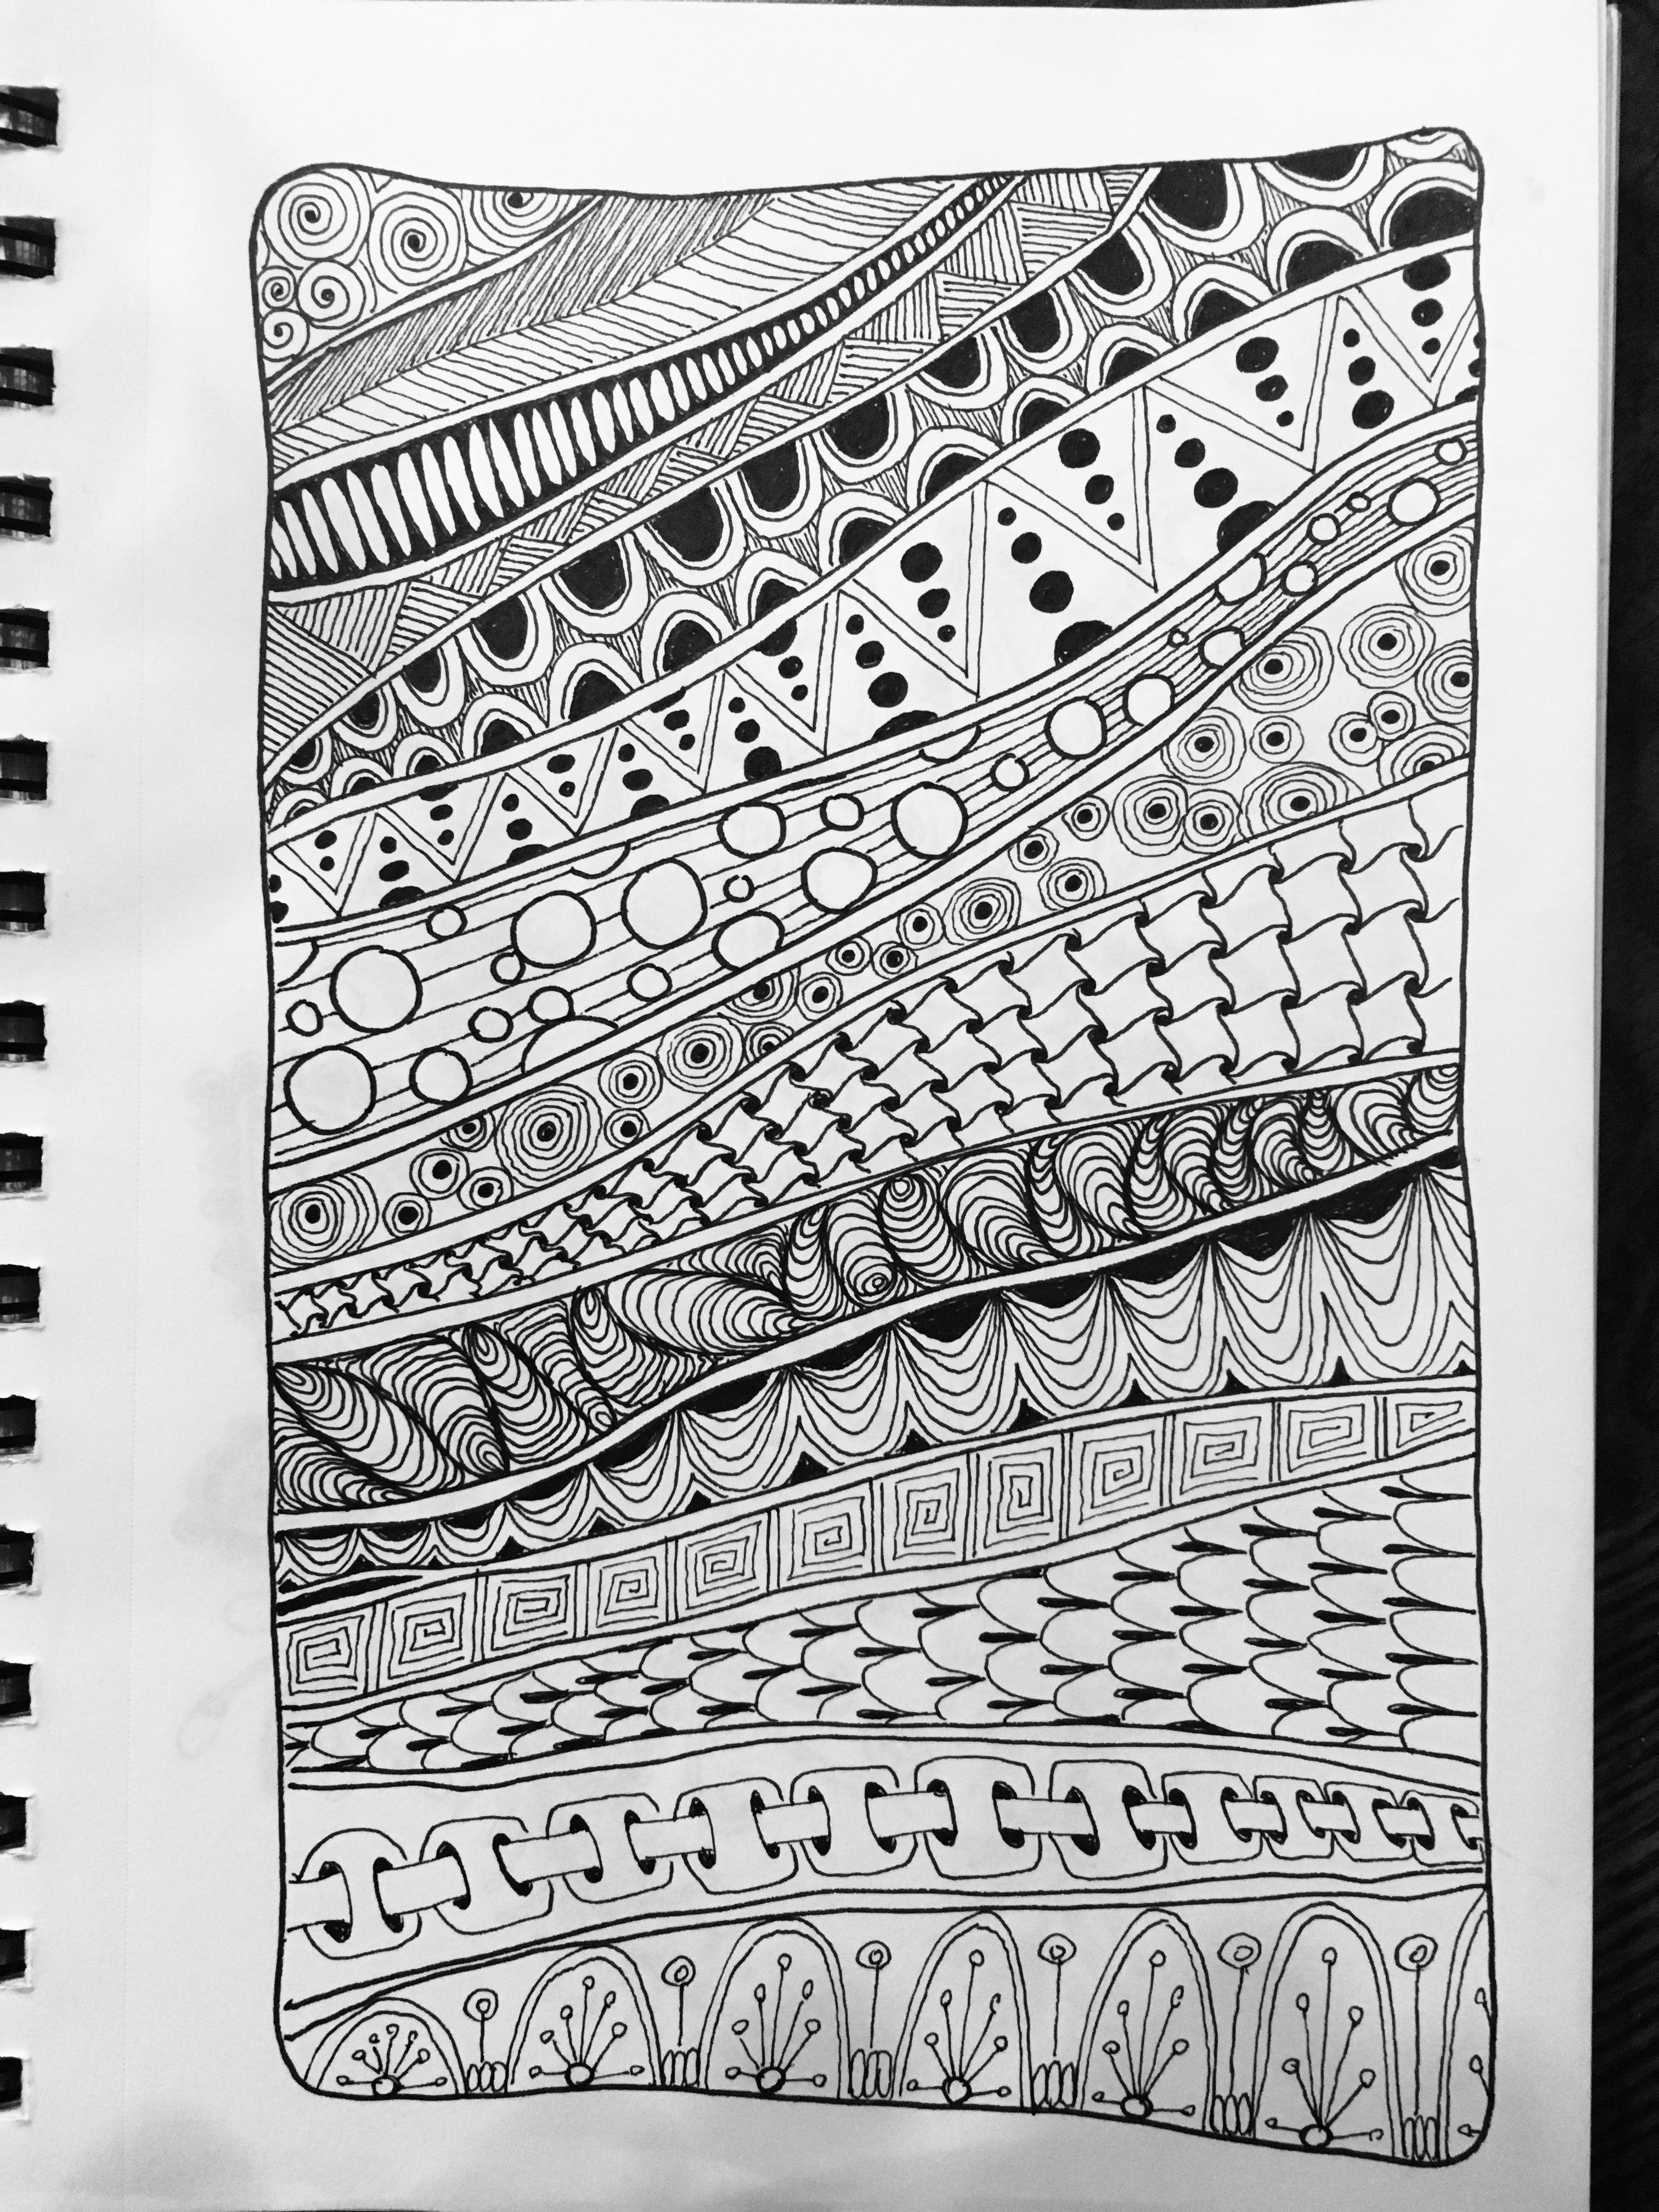 Zentangle Doodle Tangleart Rows Patterns Zentangle Doodle